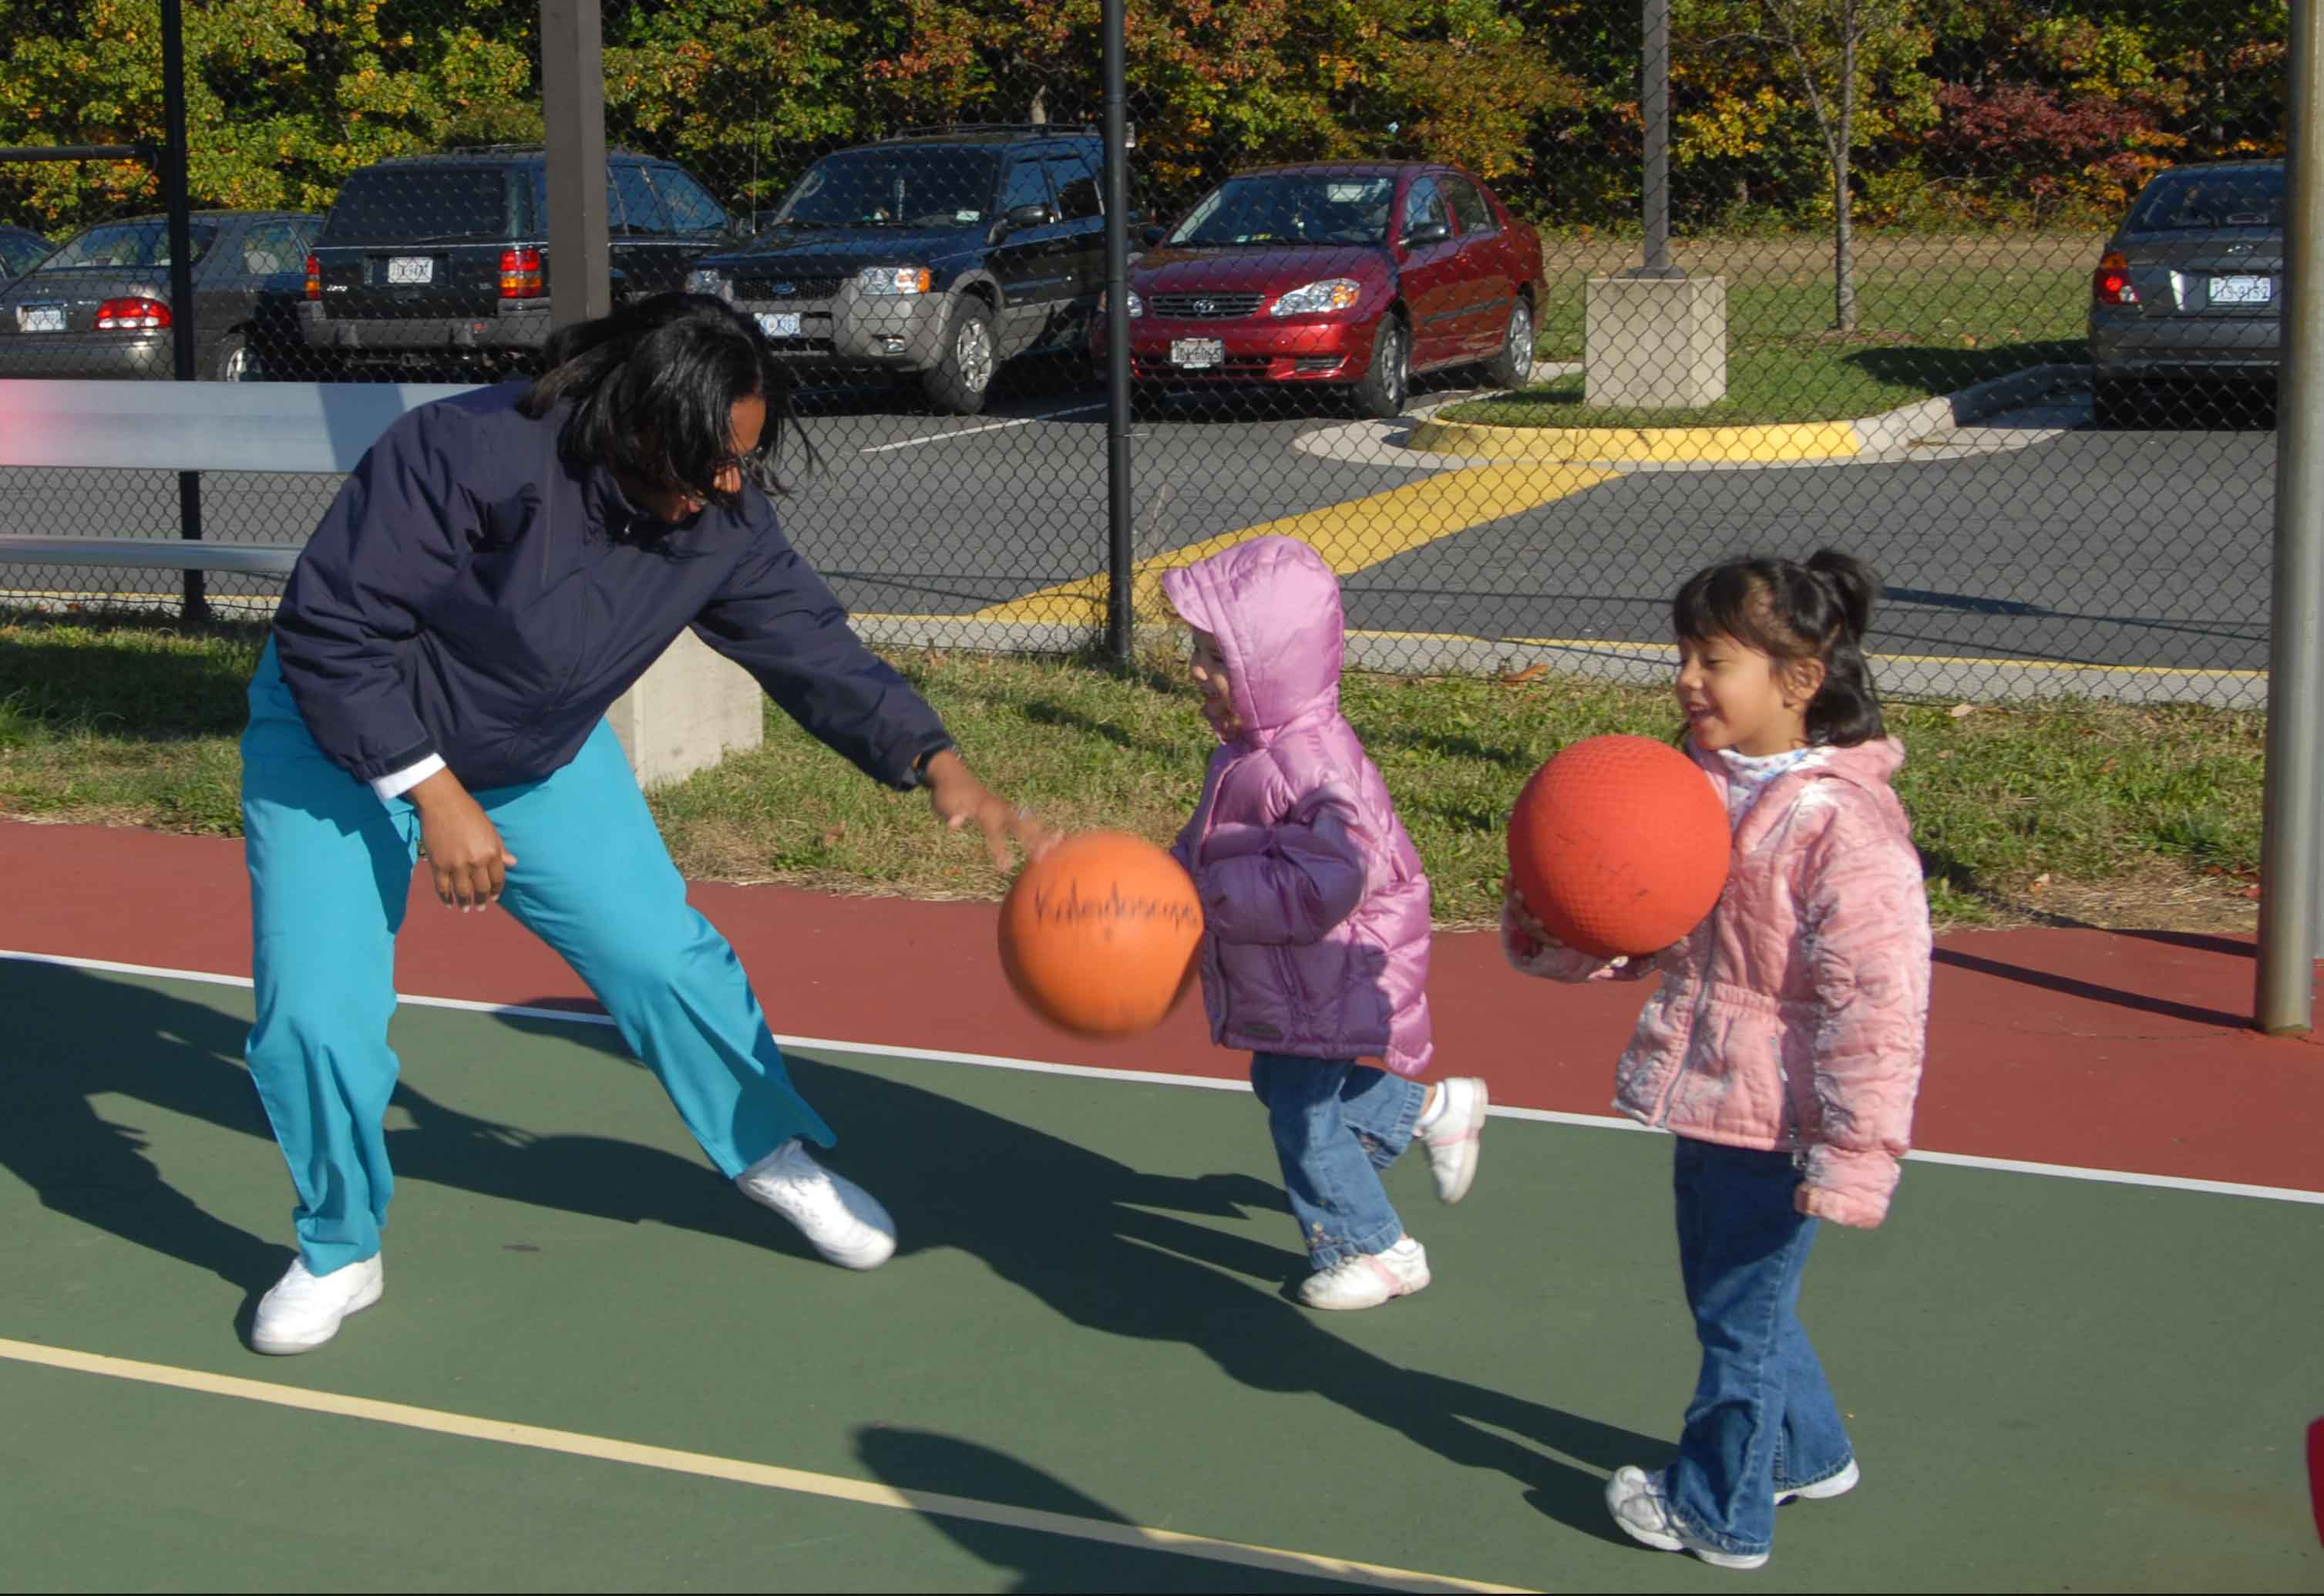 Young children need 60 minutes of active playtime to ensure good health.